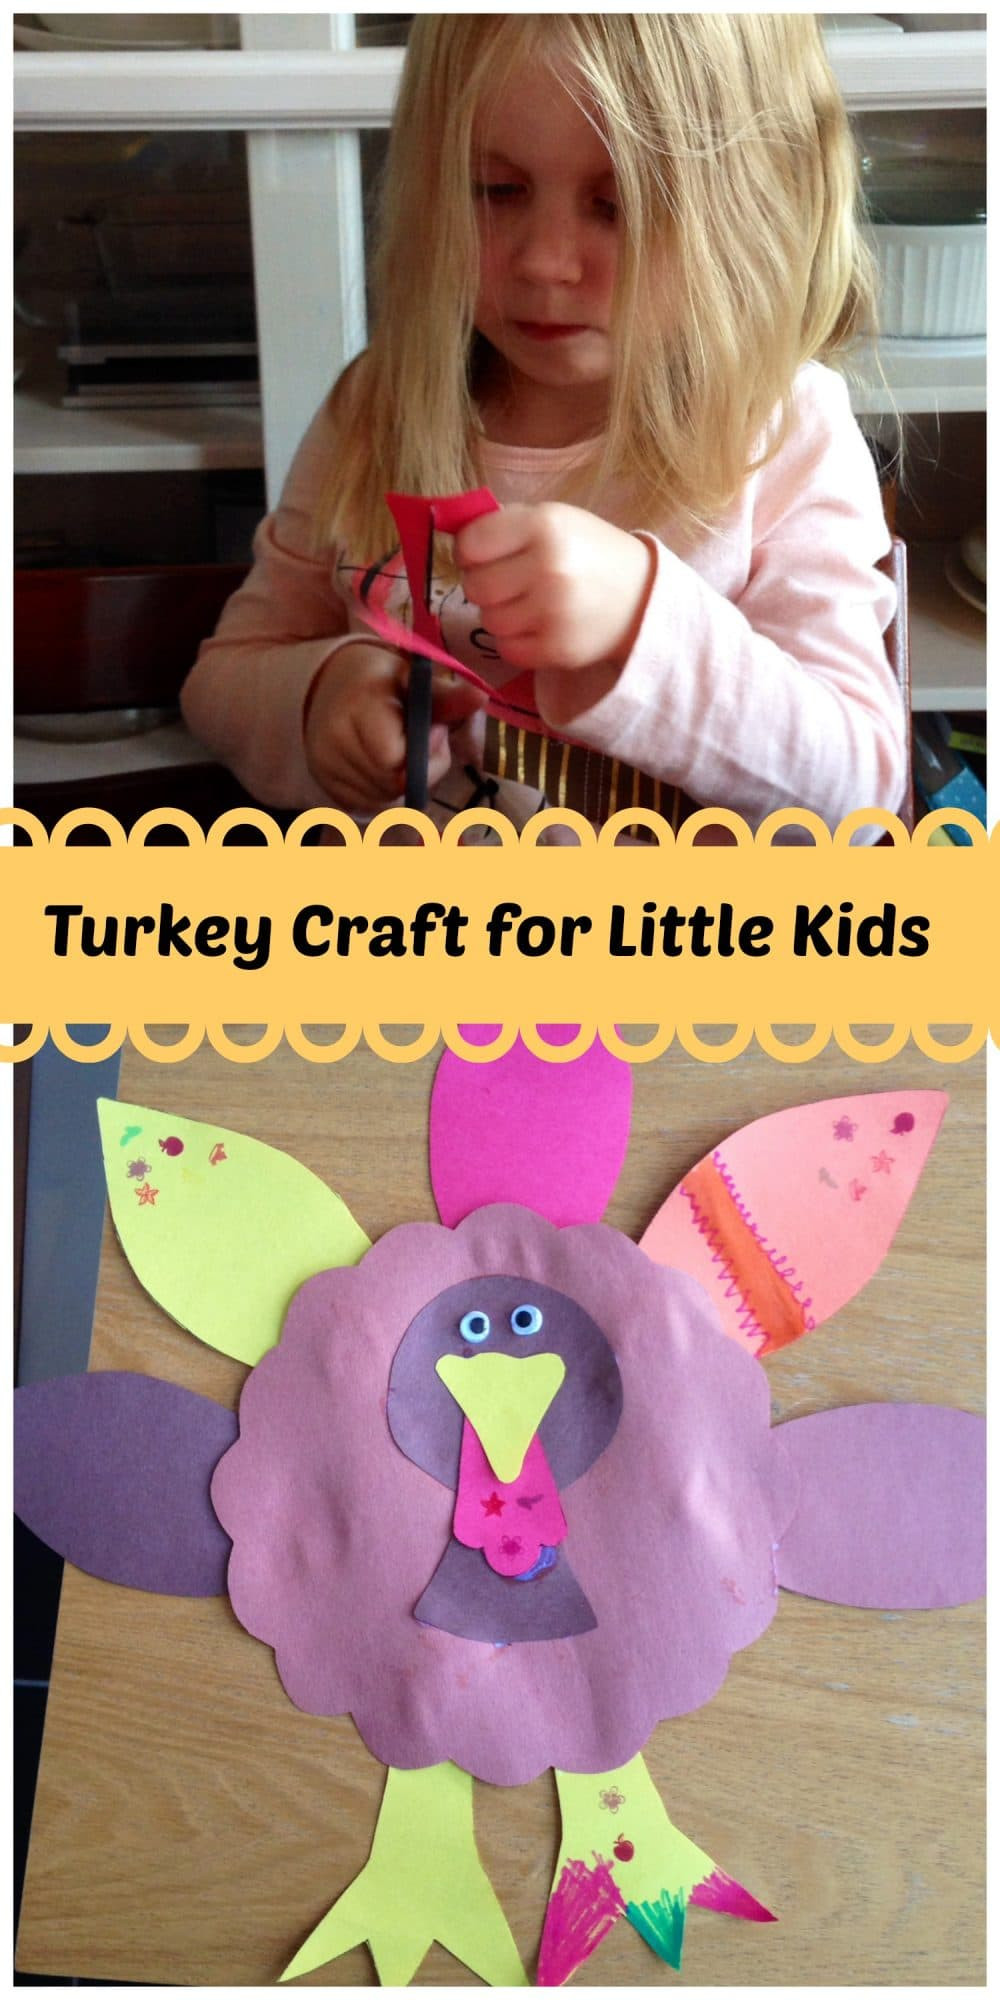 Crafts For Little Kids  Turkey Craft for Kids Big and Little Family Food And Travel